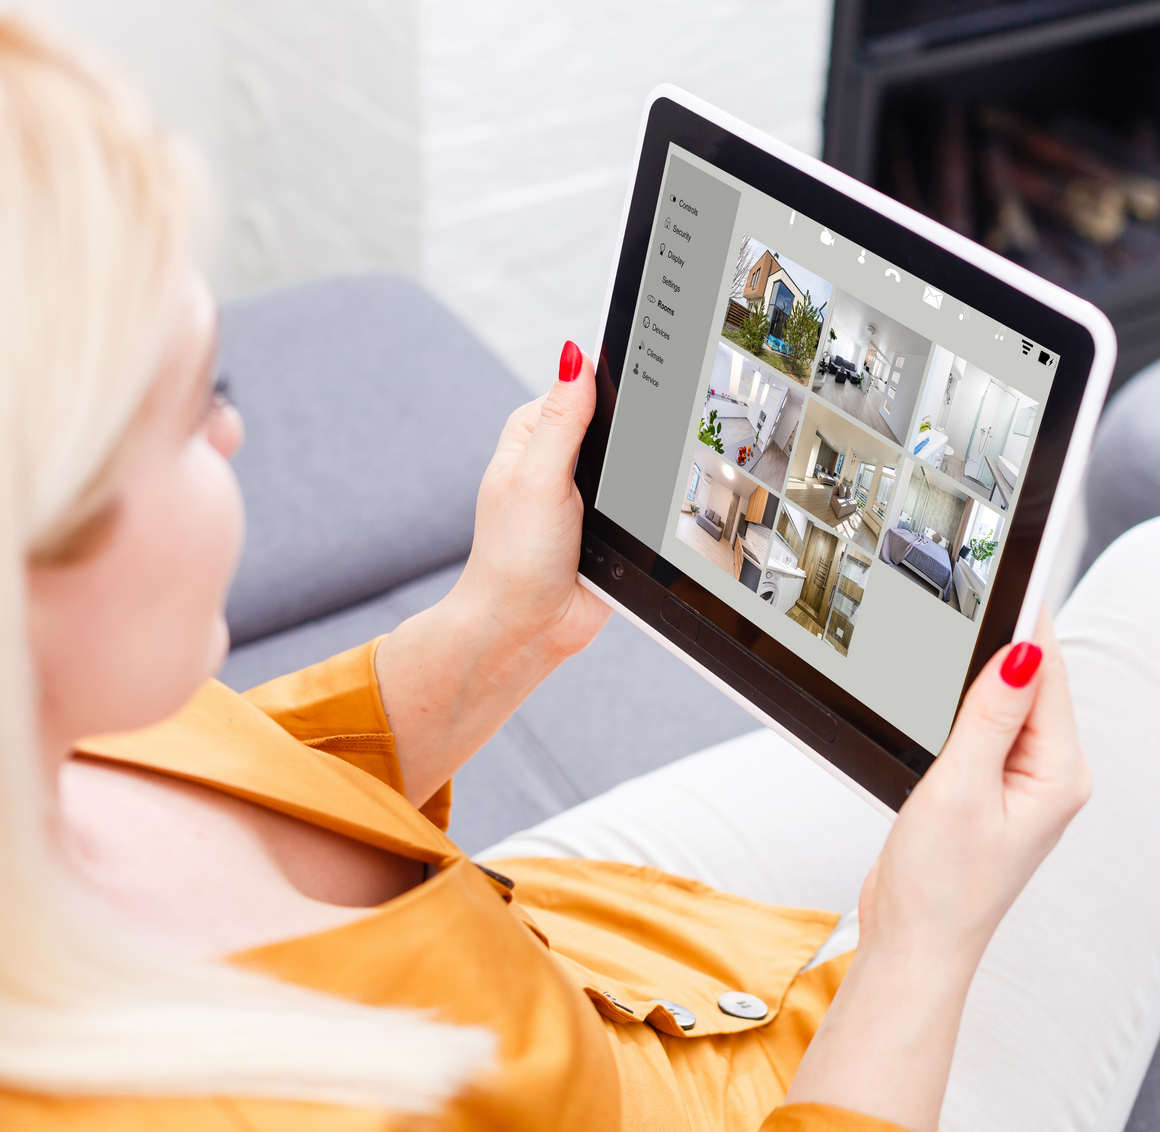 Woman,Having,A,Home,Automation,Control,Station,In,A,Modern